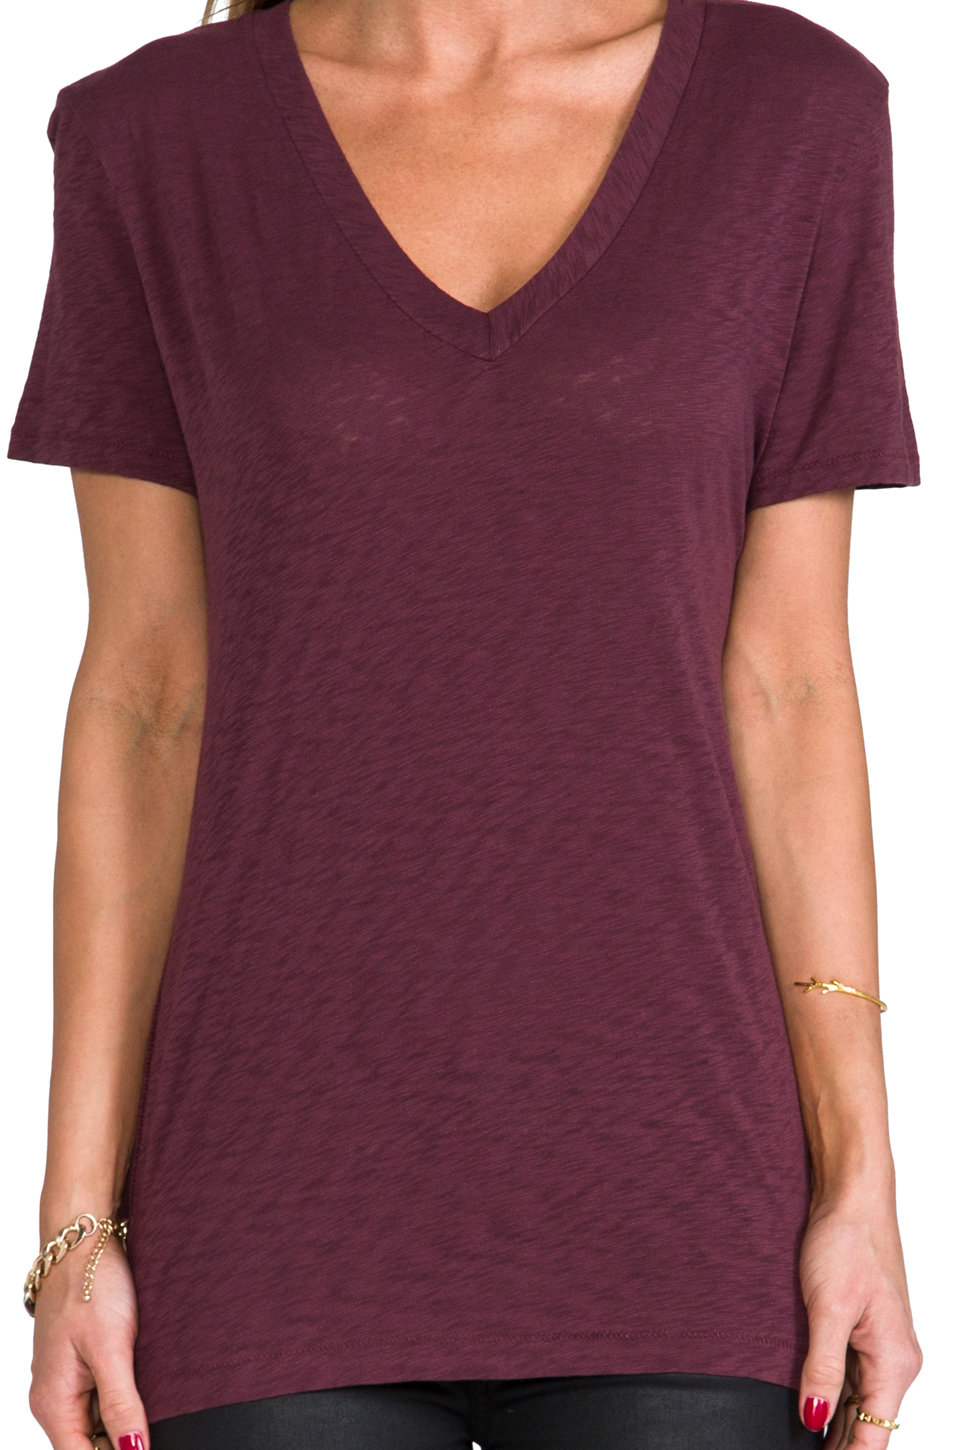 rag & bone/JEAN The Jackson V Tee in Port